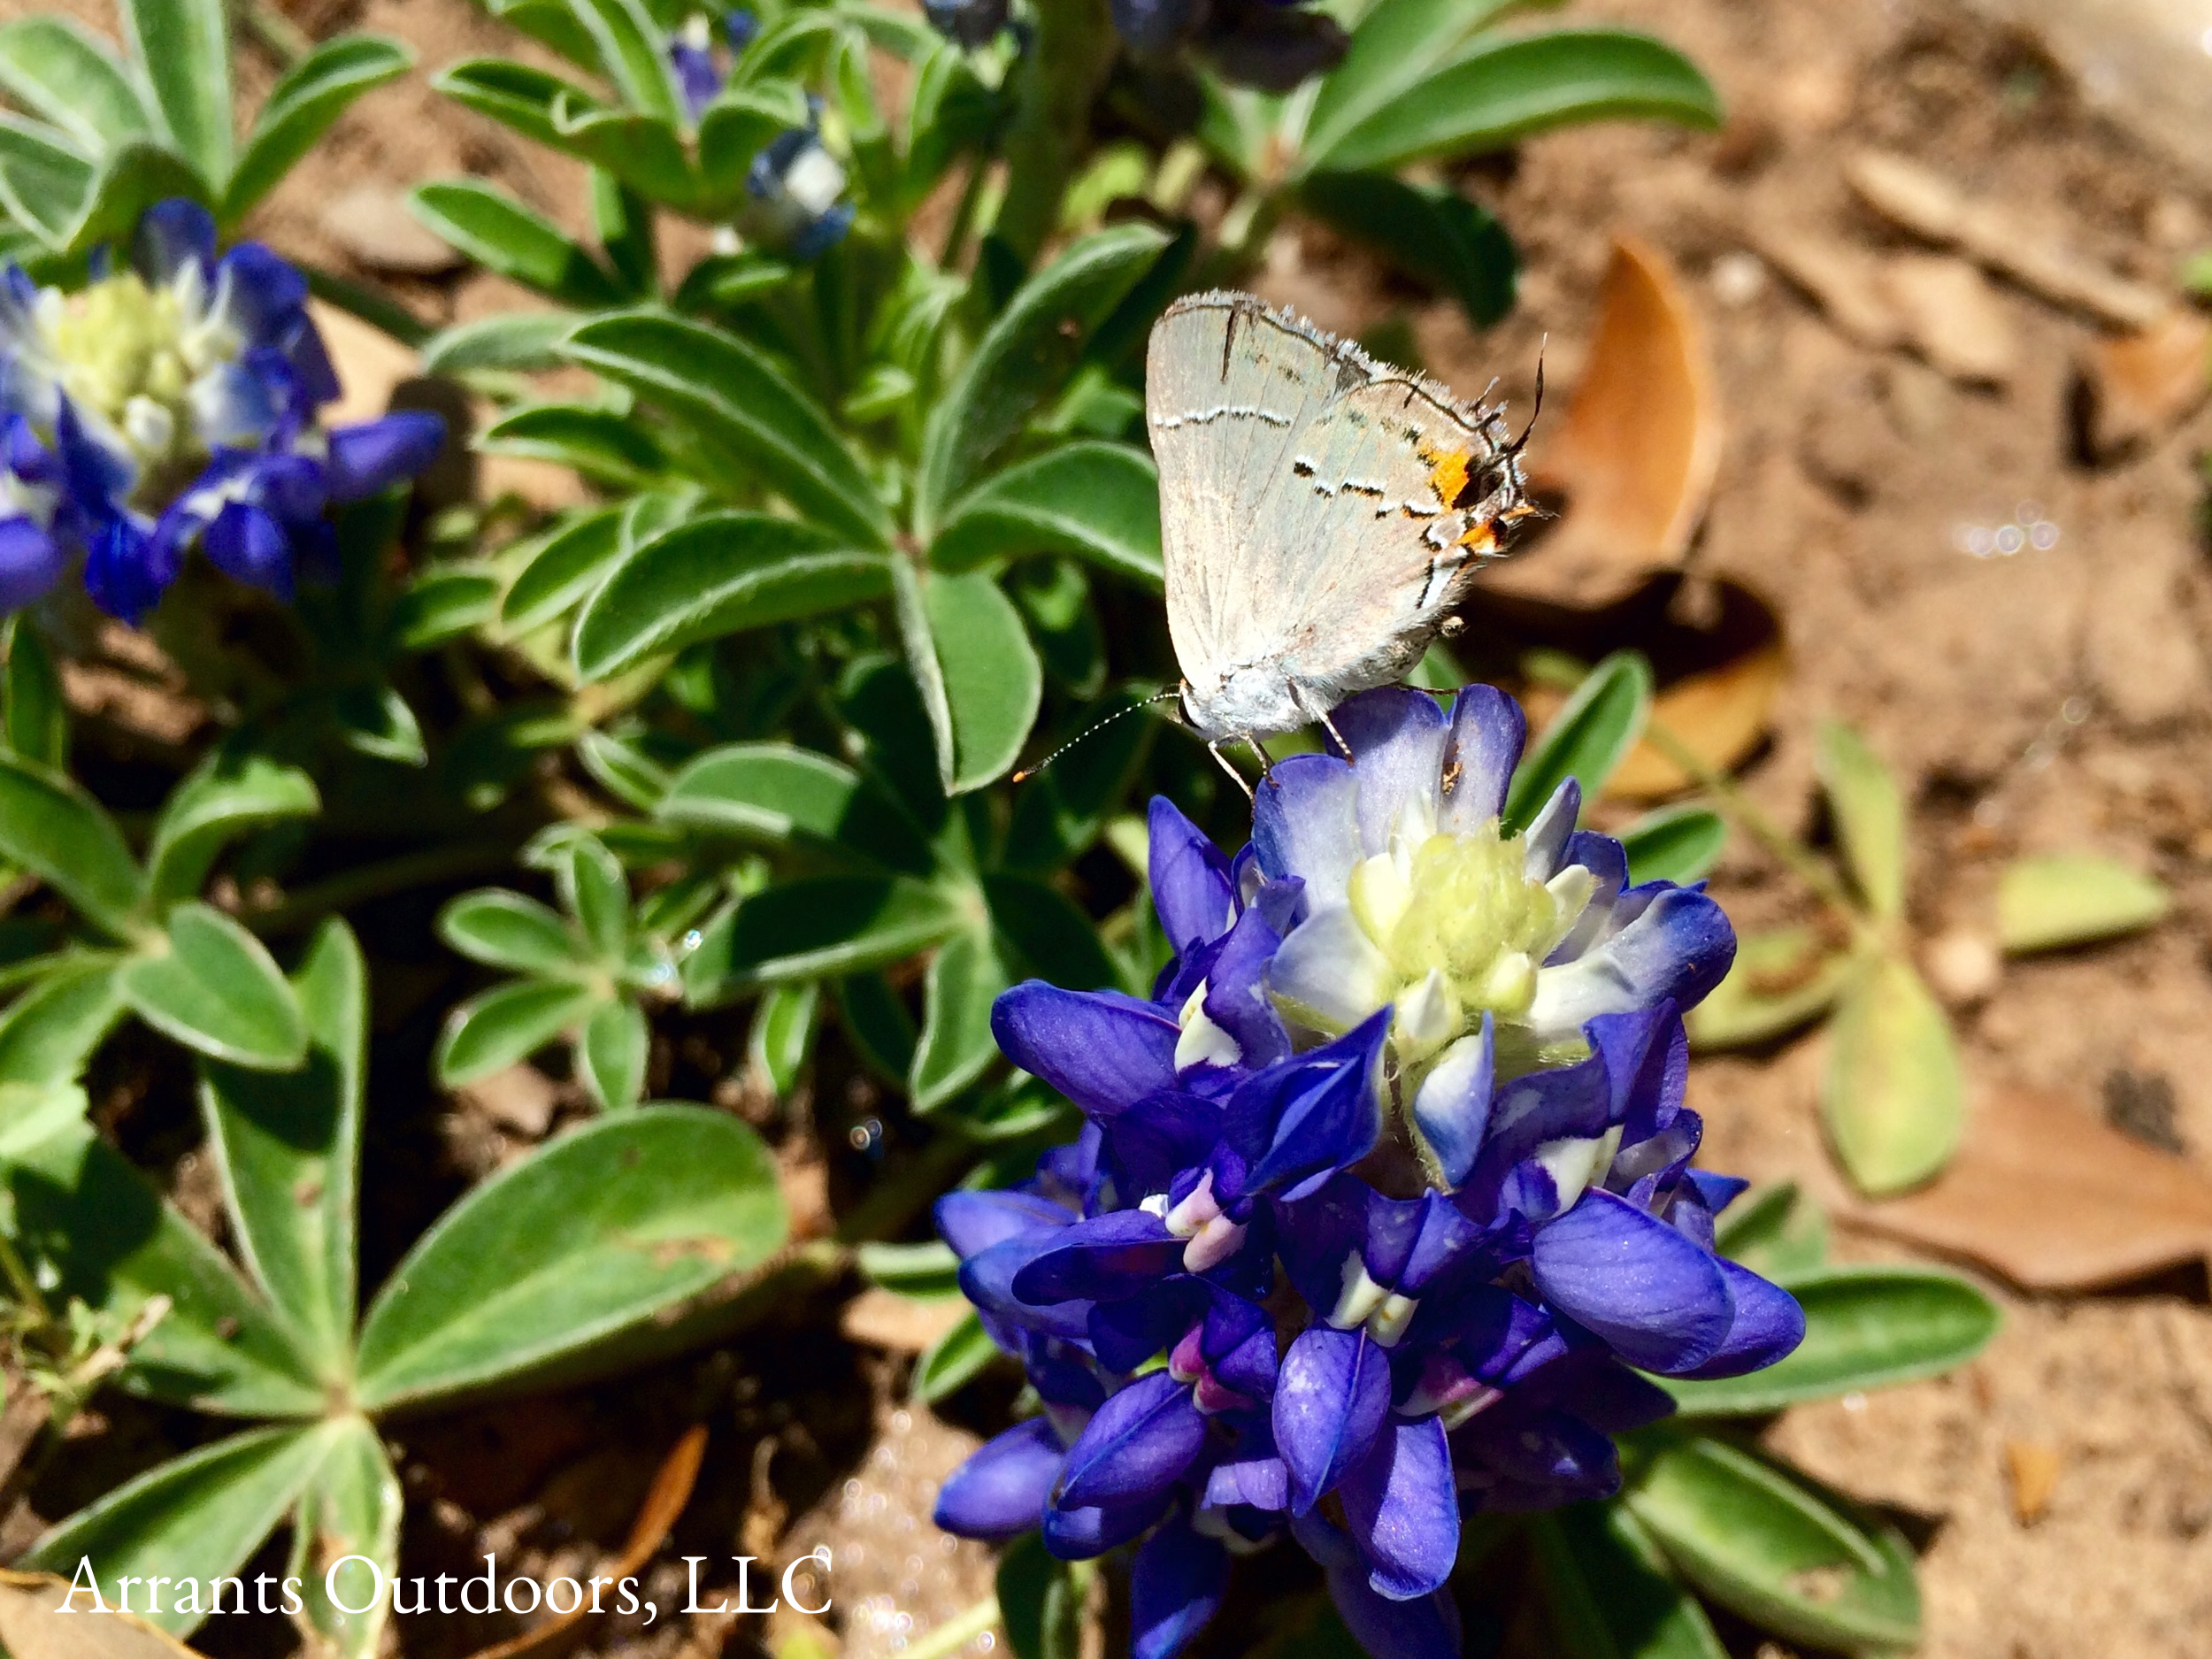 Gray Hairstreak (Strymon melinus) on Texas Bluebonnet.